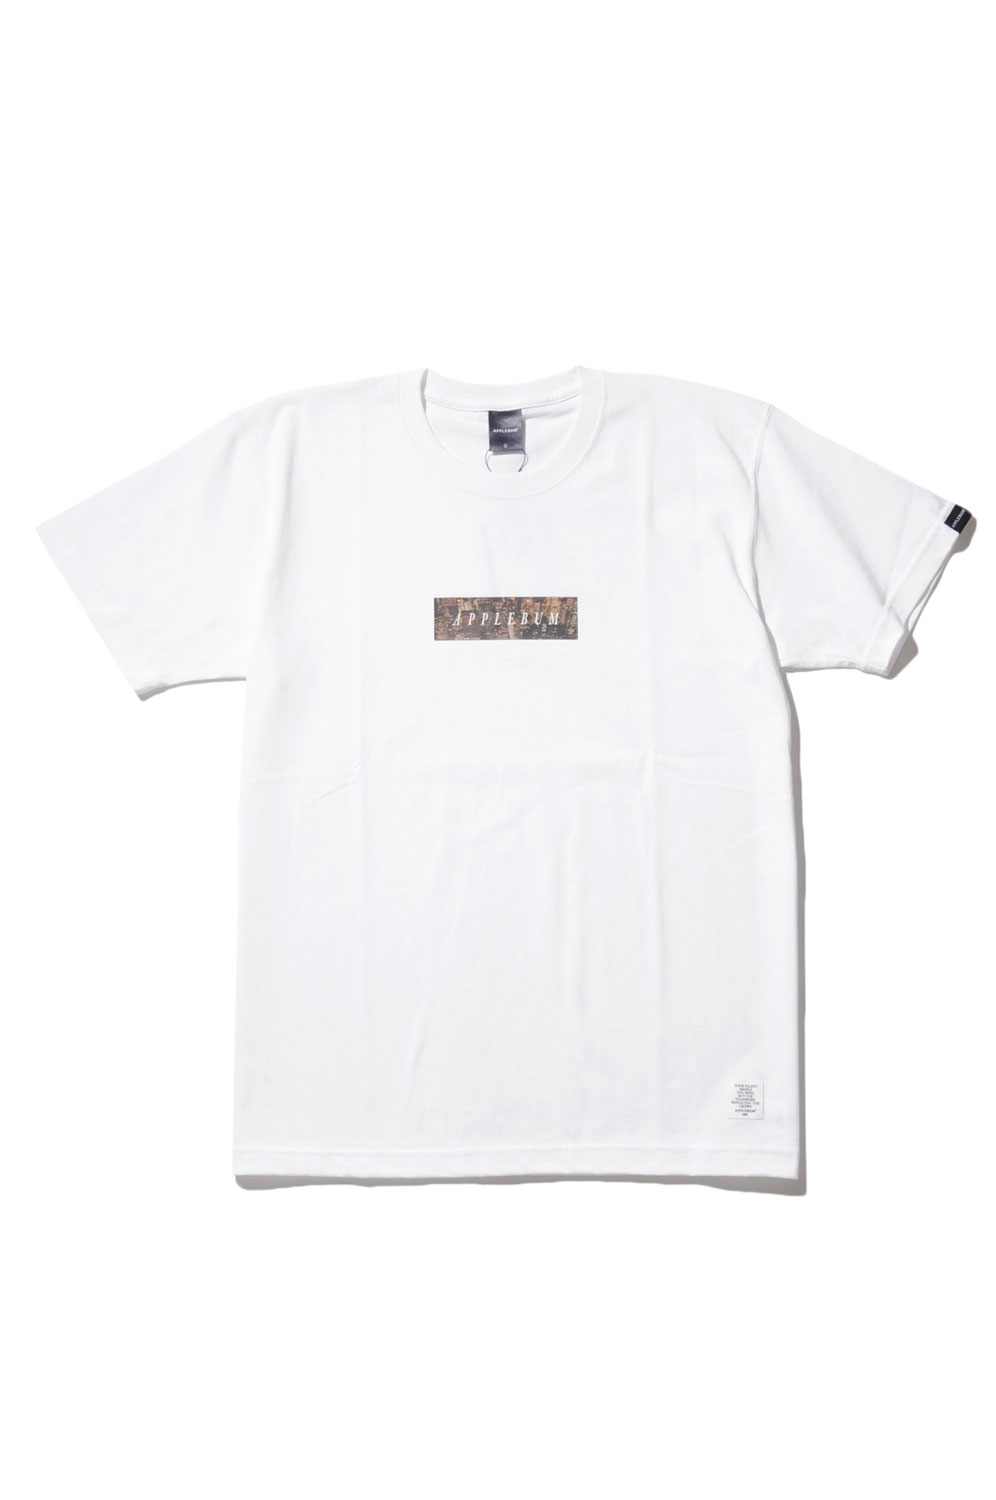 "画像1: 【APPLEBUM】""Babylon"" T-shirt (1)"